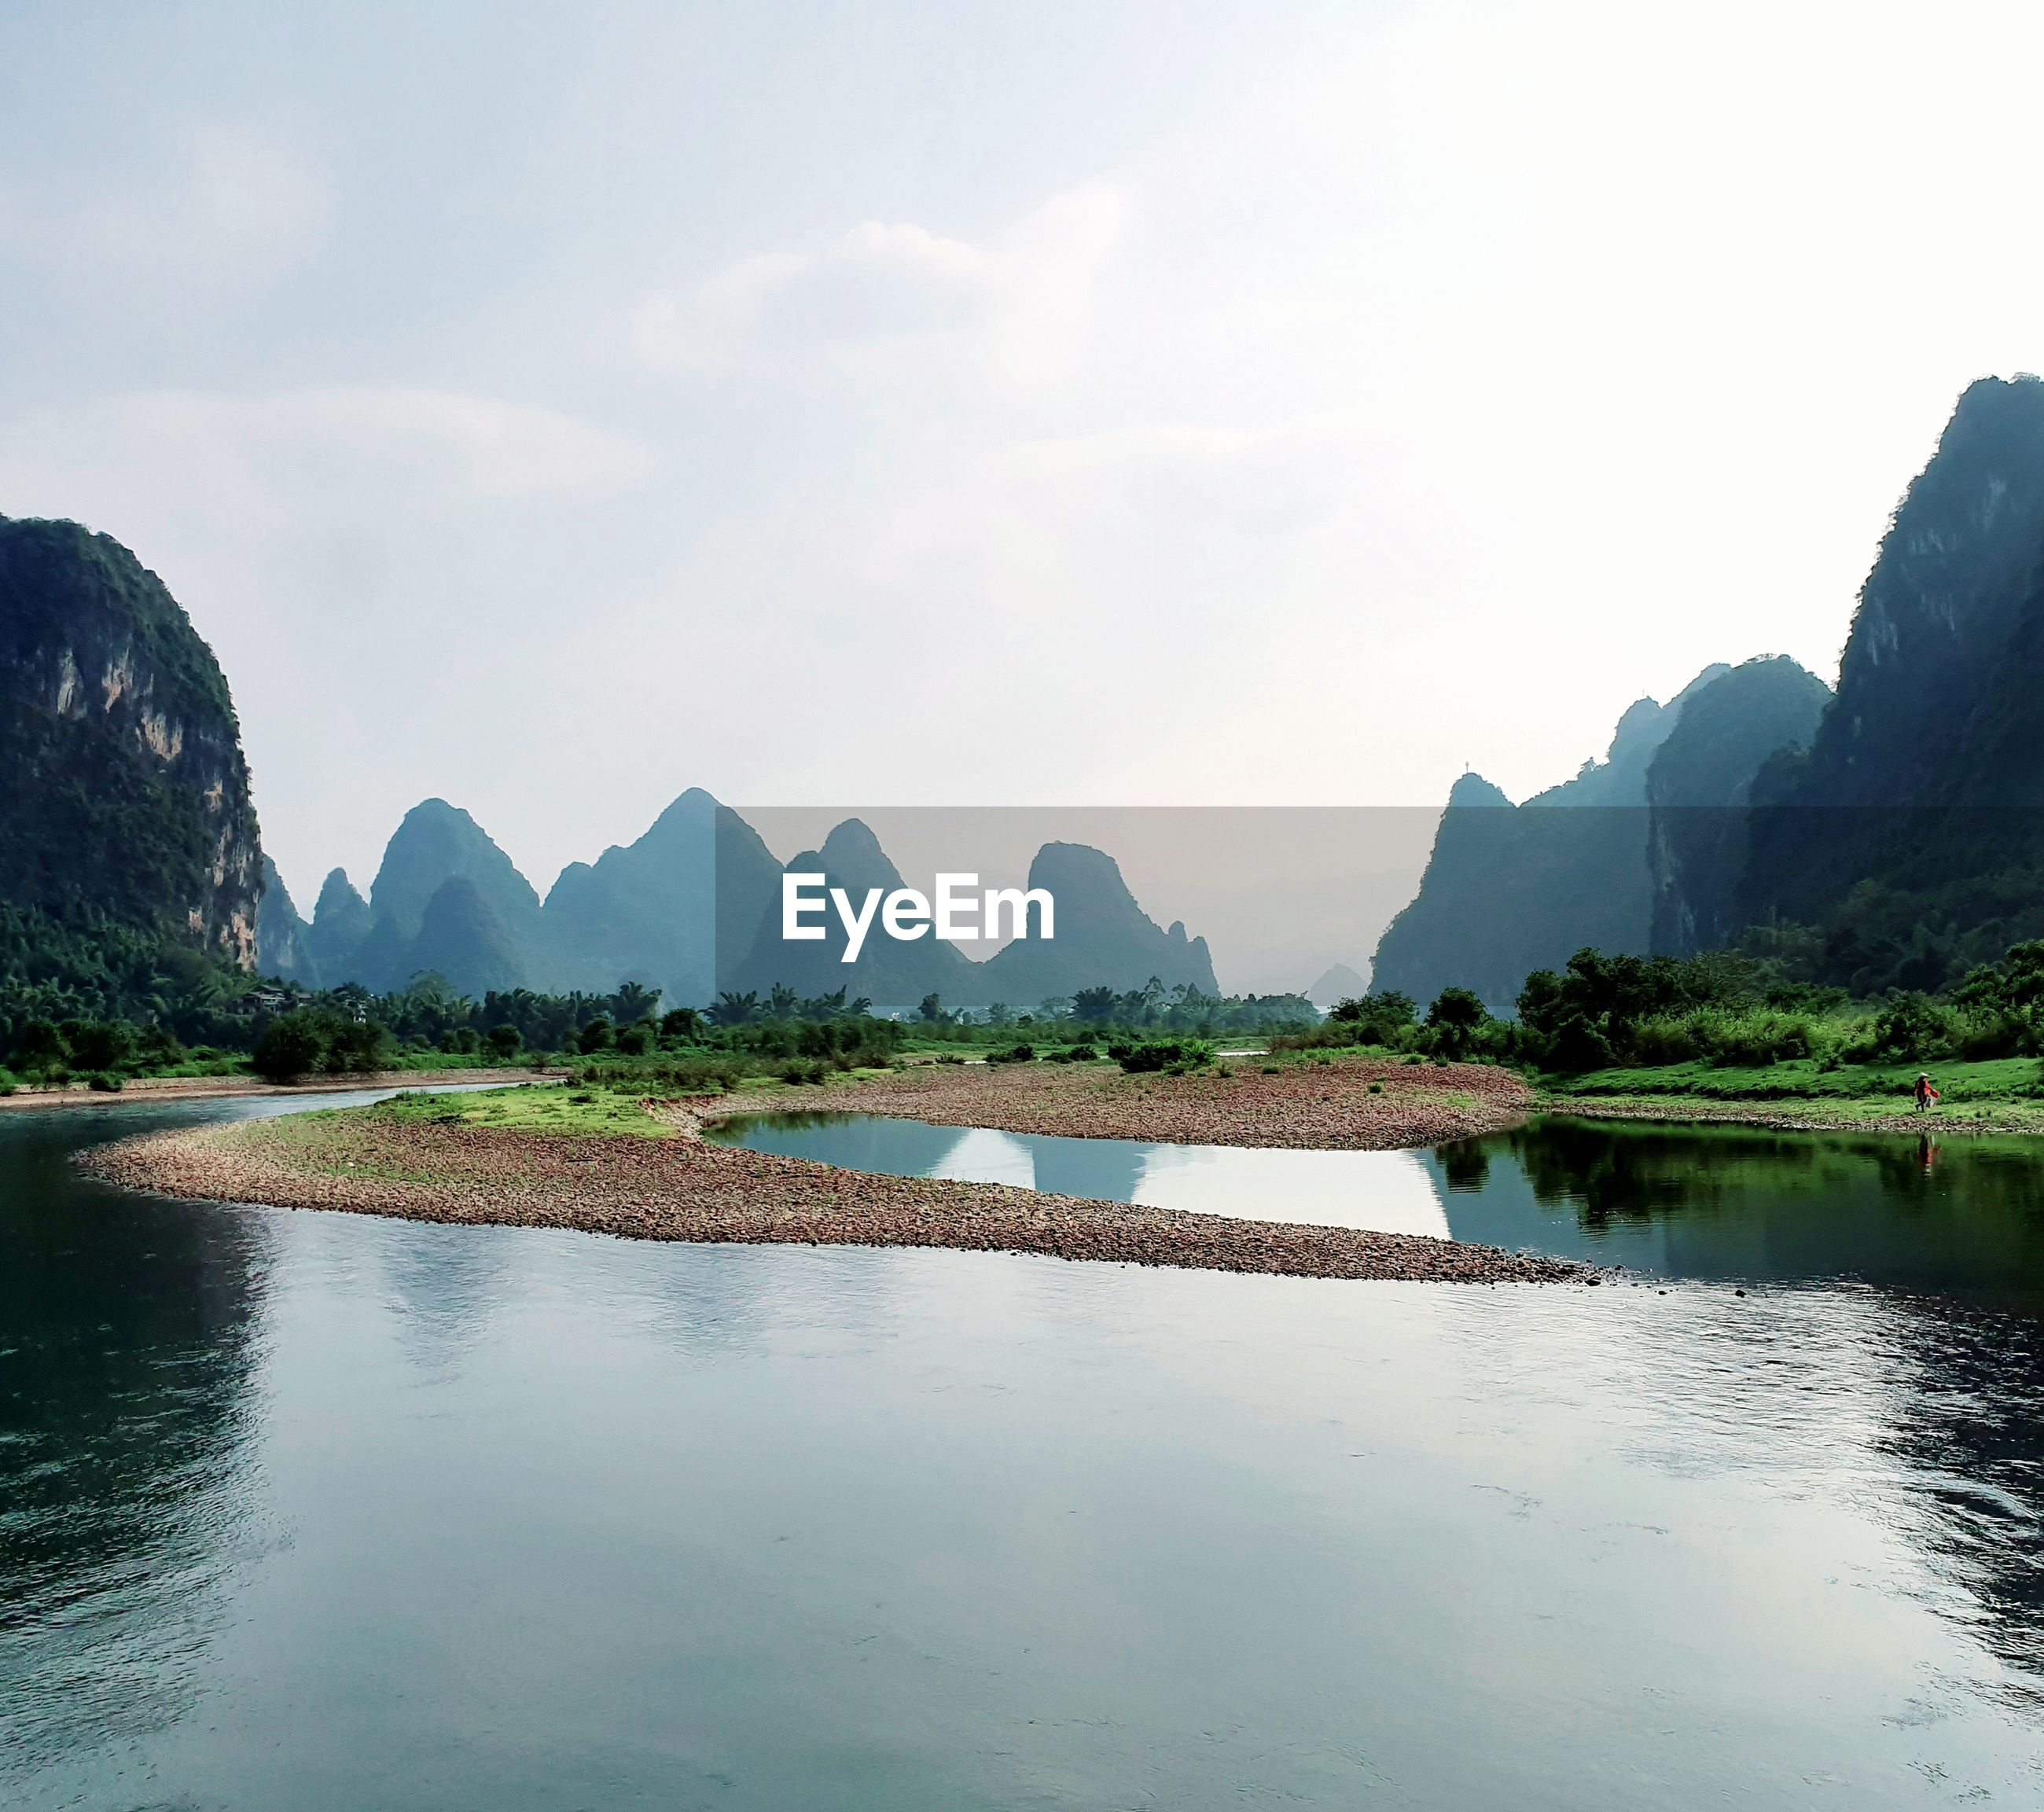 Rolling hills of guilin in china.